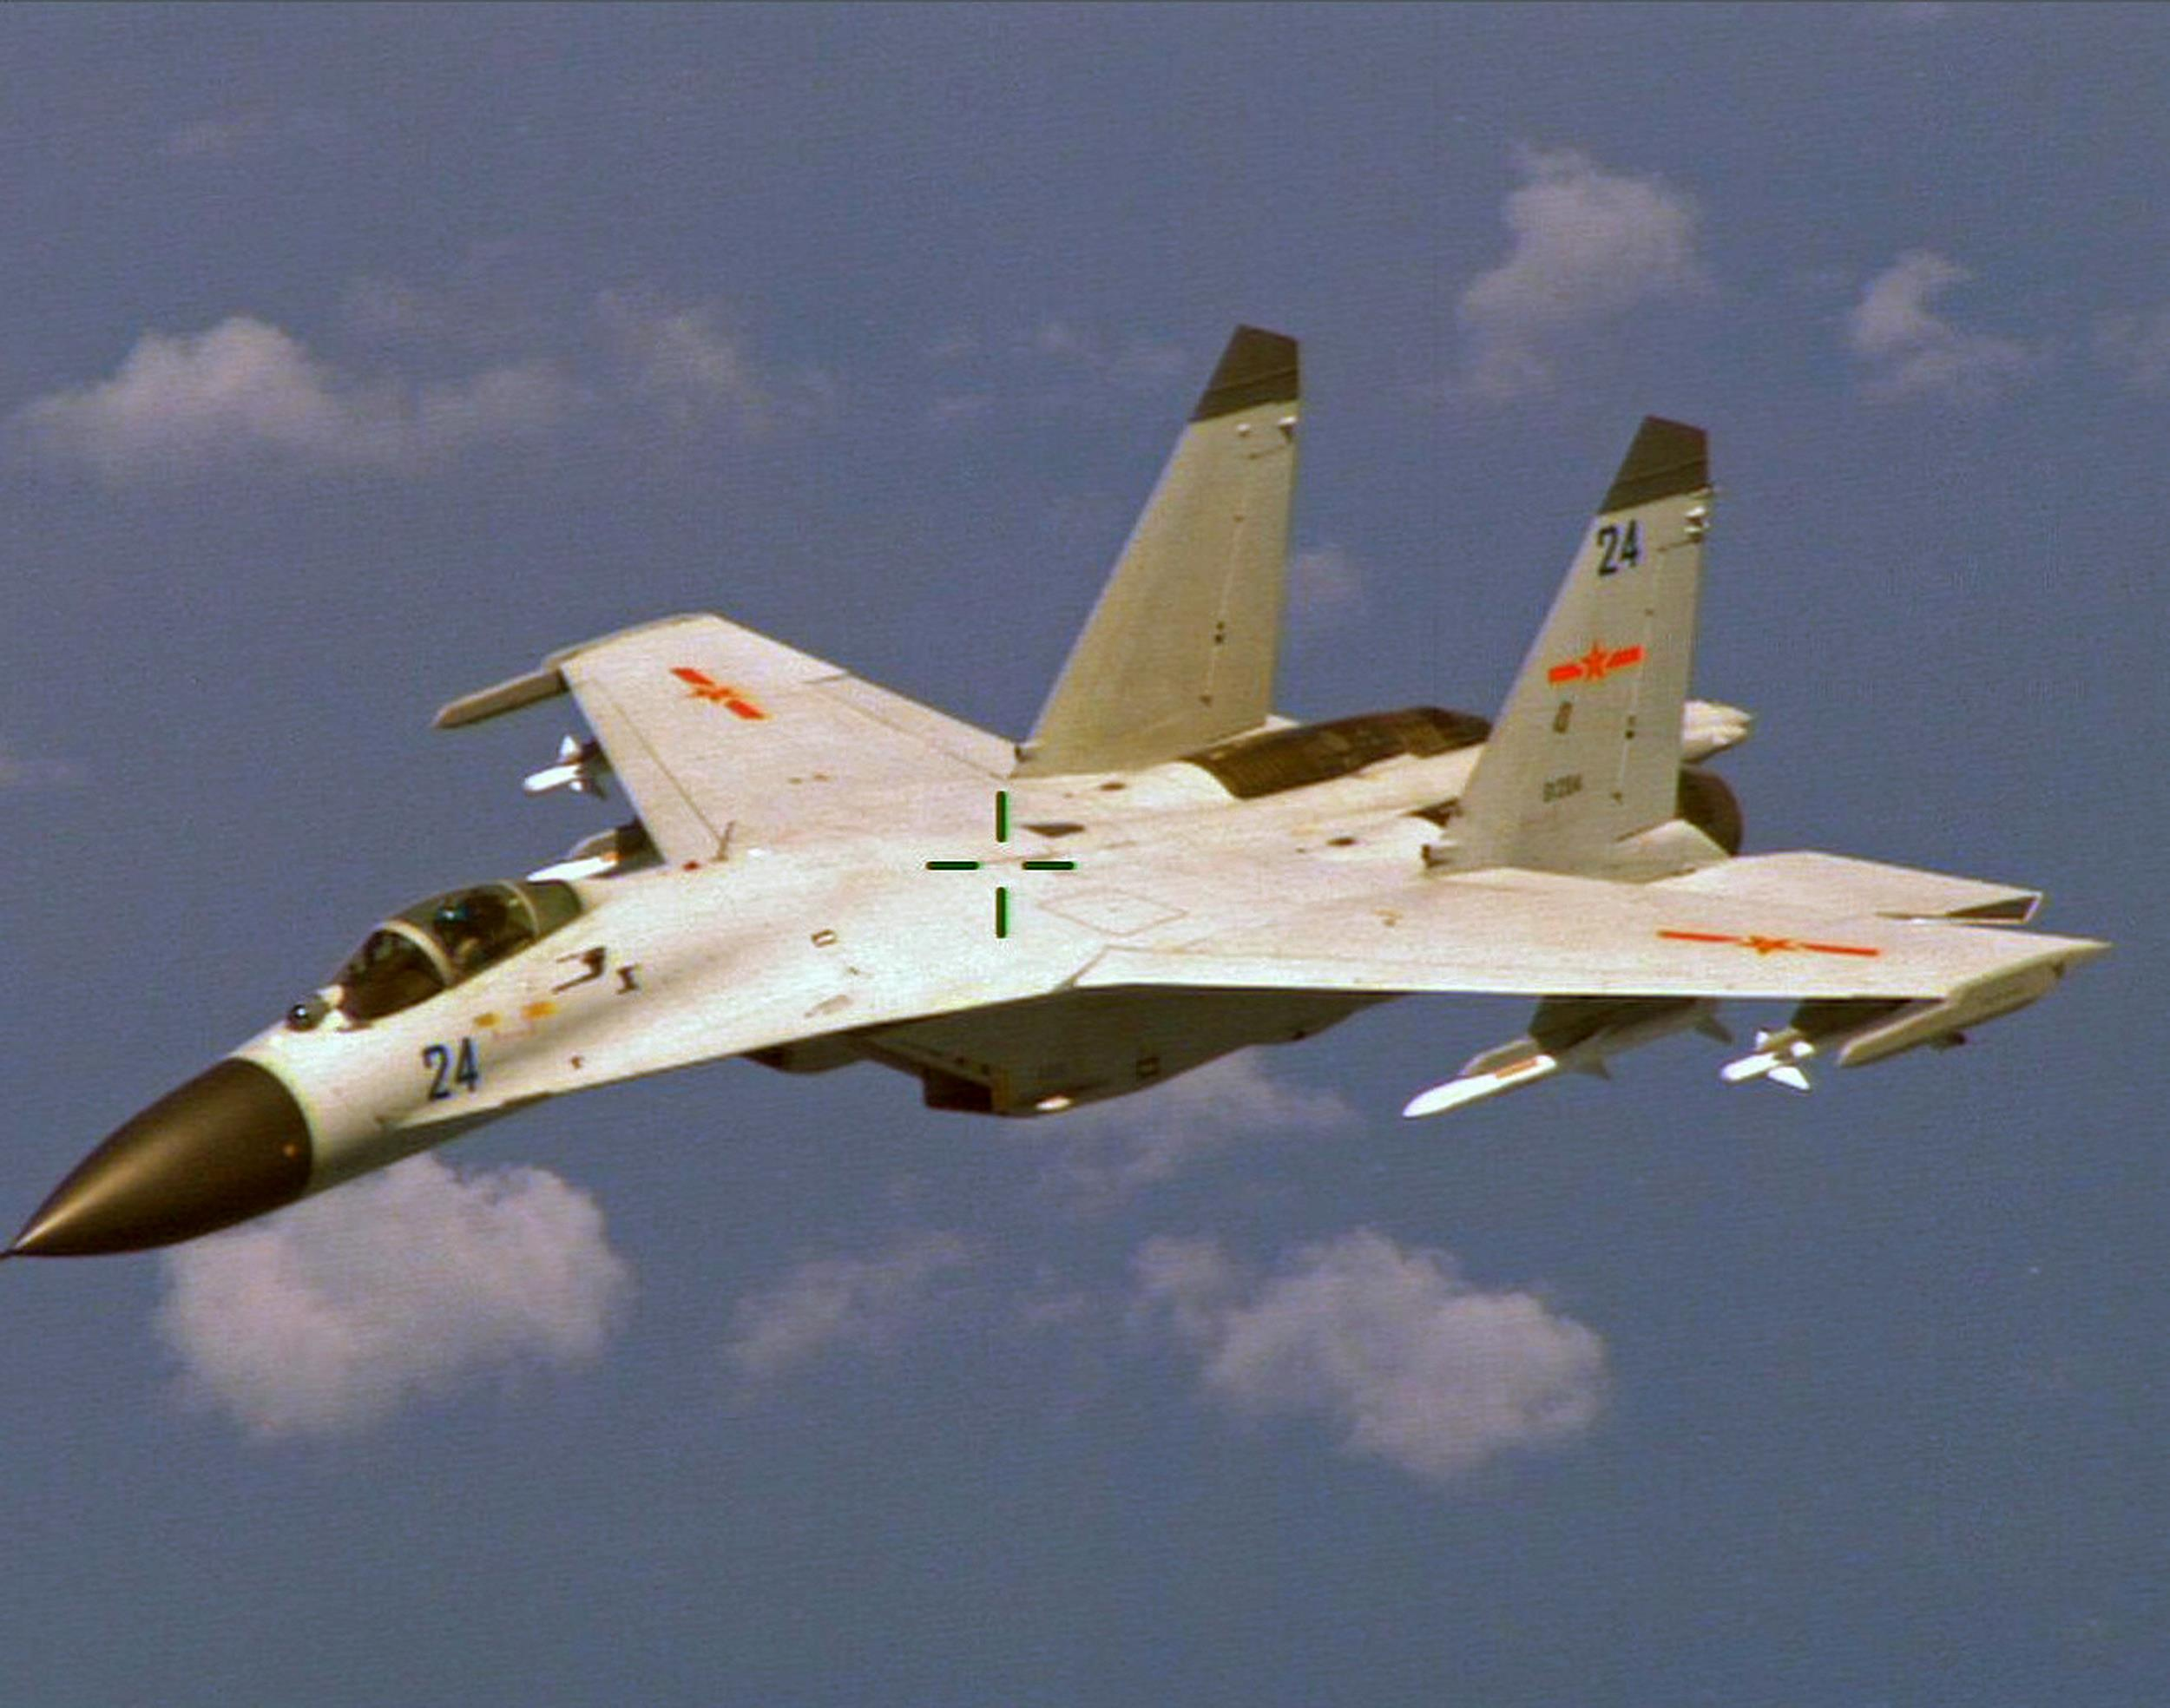 Image: A Chinese J-11 fighter jet is seen flying near a U.S. Navy P-8 Poseidon east of China's Hainan Island